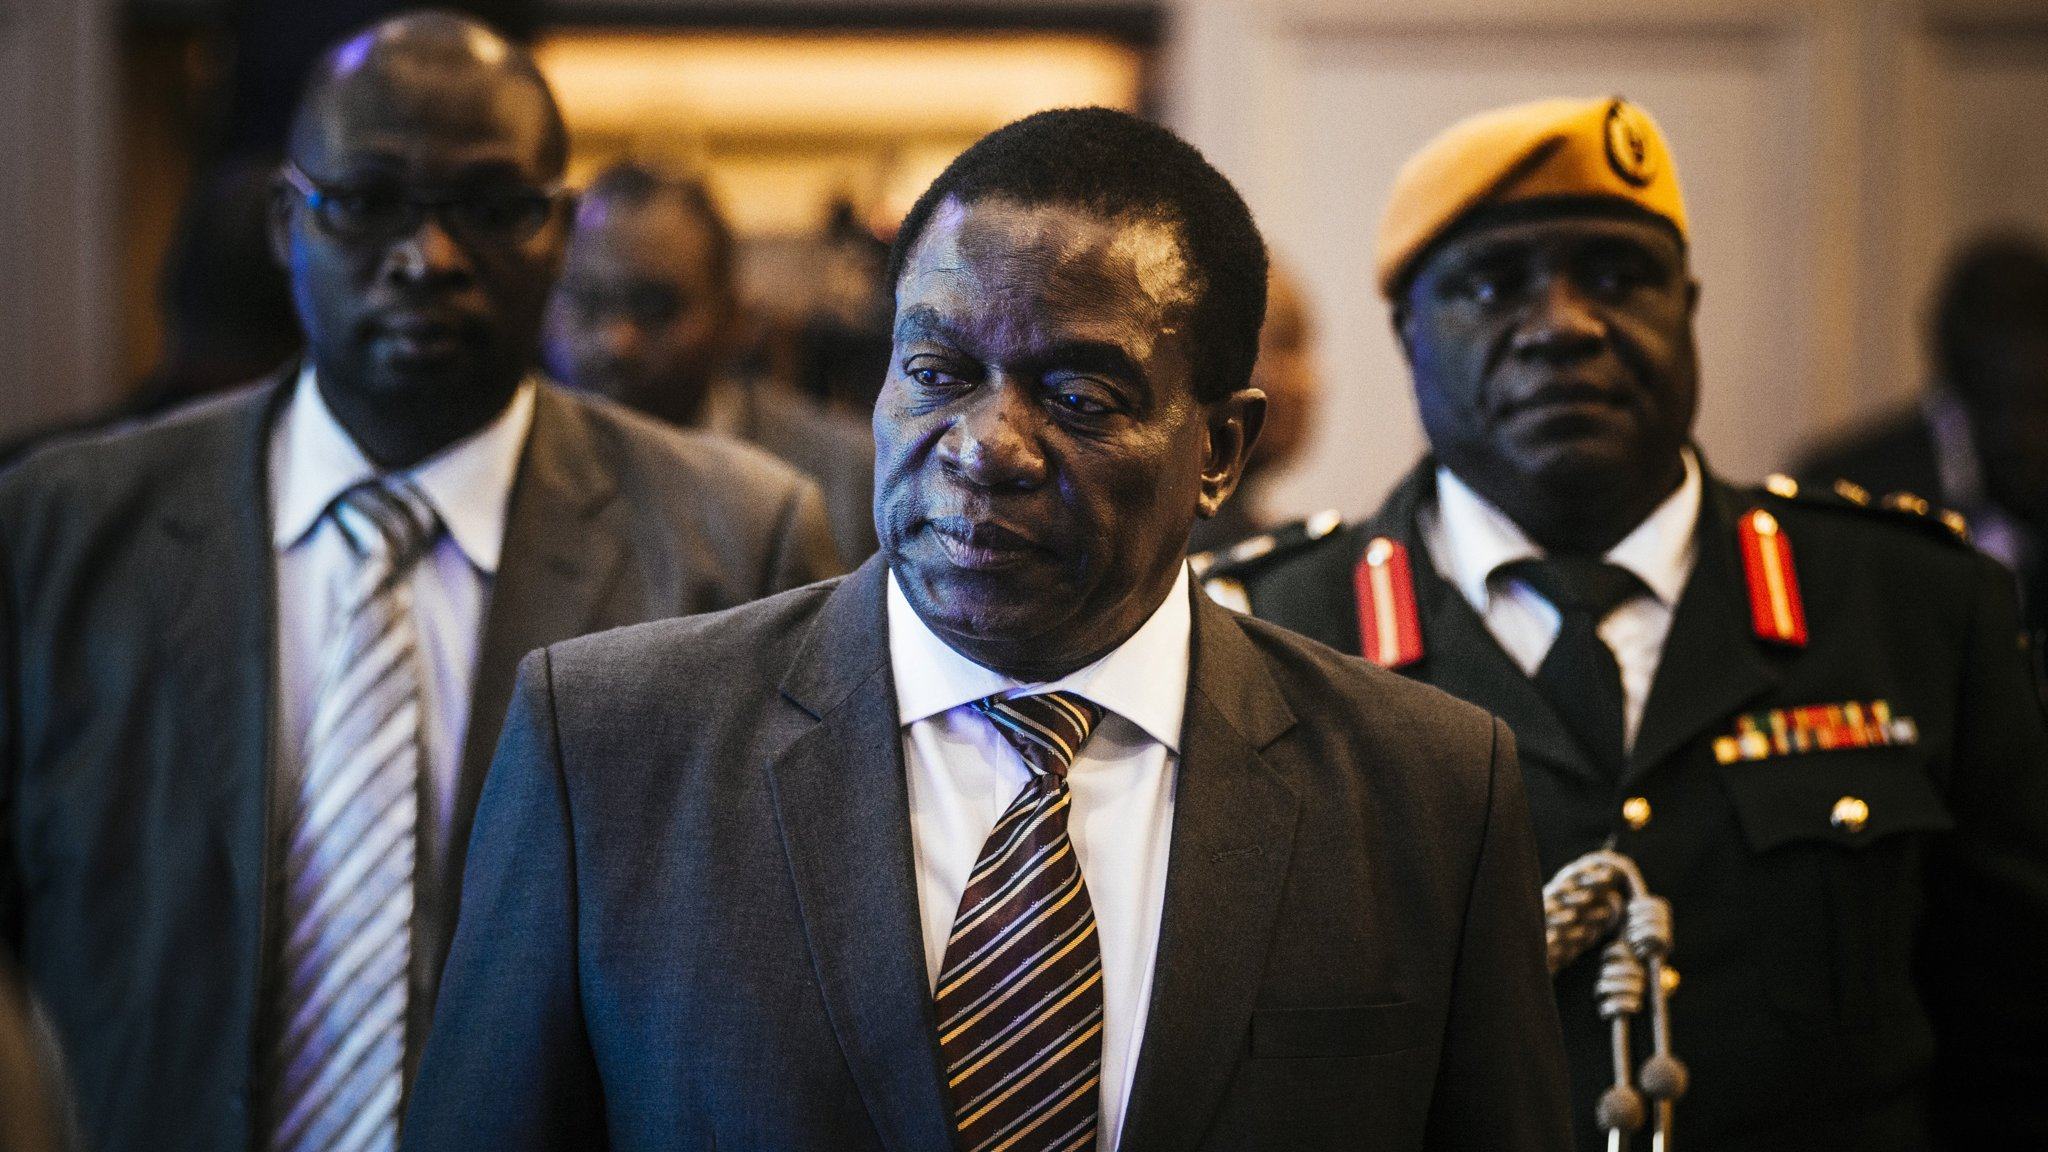 Zimbabwe's Mnangagwa voices concern over Mugabe opposition links